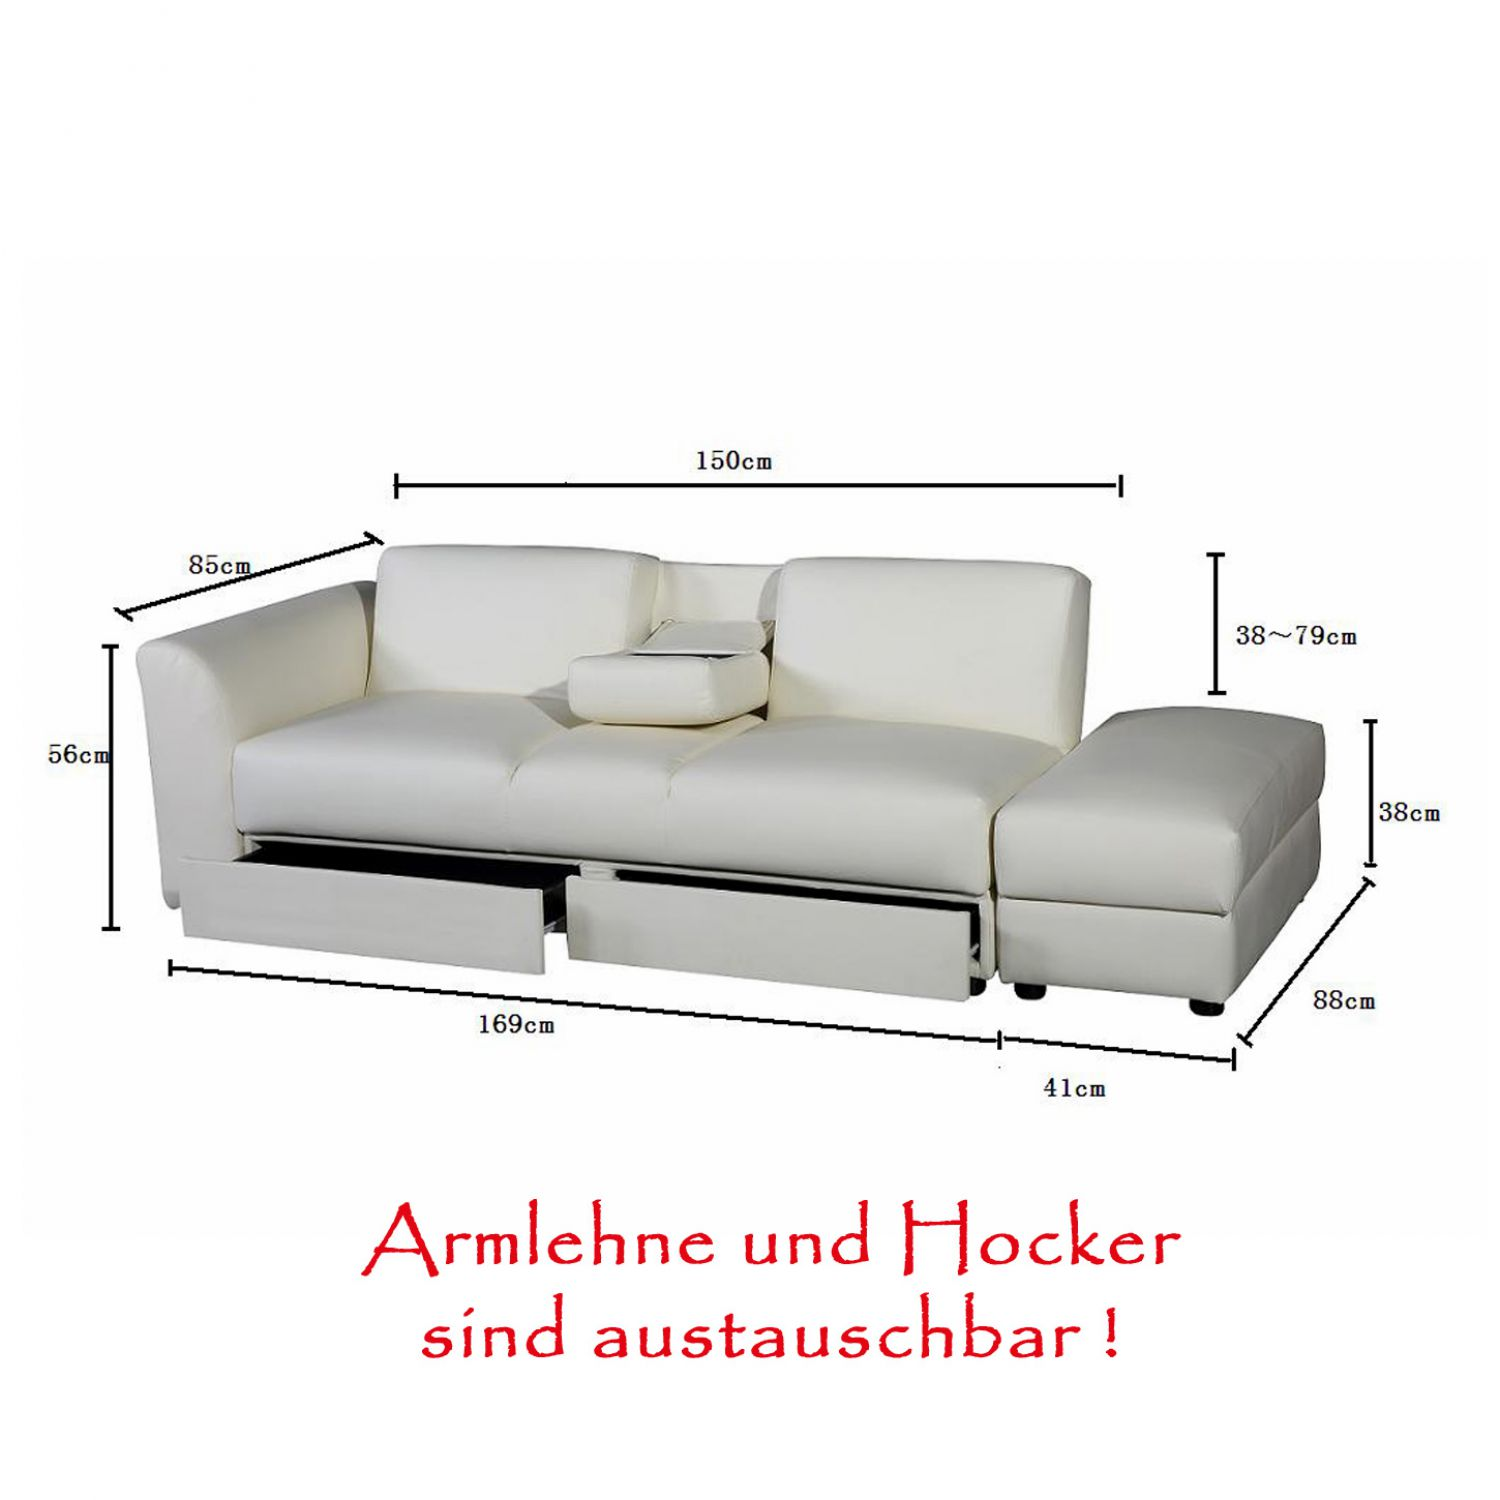 king funktionssofa weiss schlafsofa sofa kunstleder bettsofa lounge couch ebay. Black Bedroom Furniture Sets. Home Design Ideas